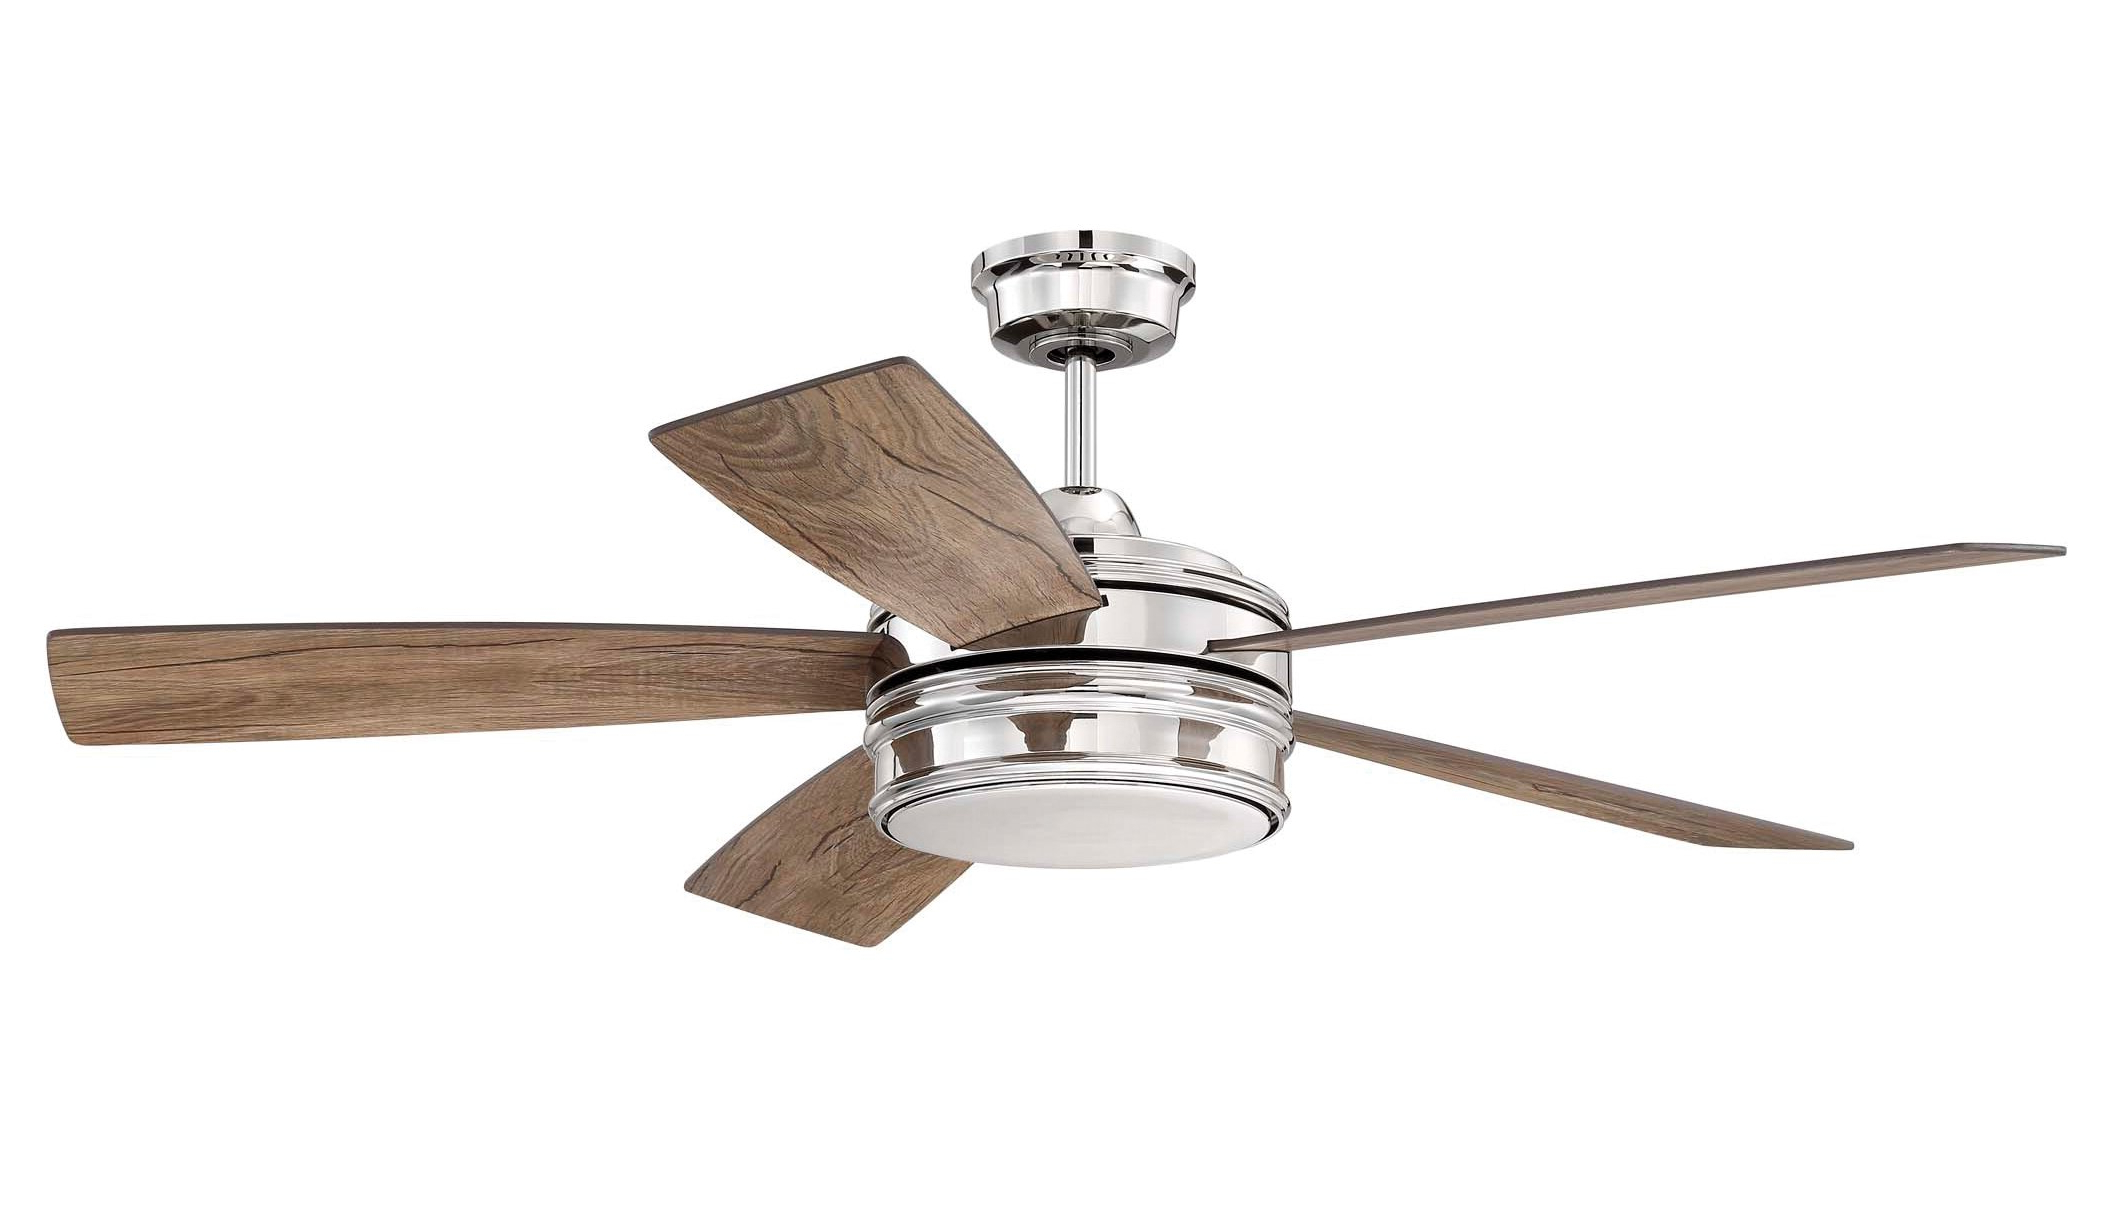 """Clybourn 5 Blade Ceiling Fans Inside Most Popular Greyleigh 52"""" Winchcombe 5 Blade Led Ceiling Fan With Remote Light Kit (View 5 of 20)"""